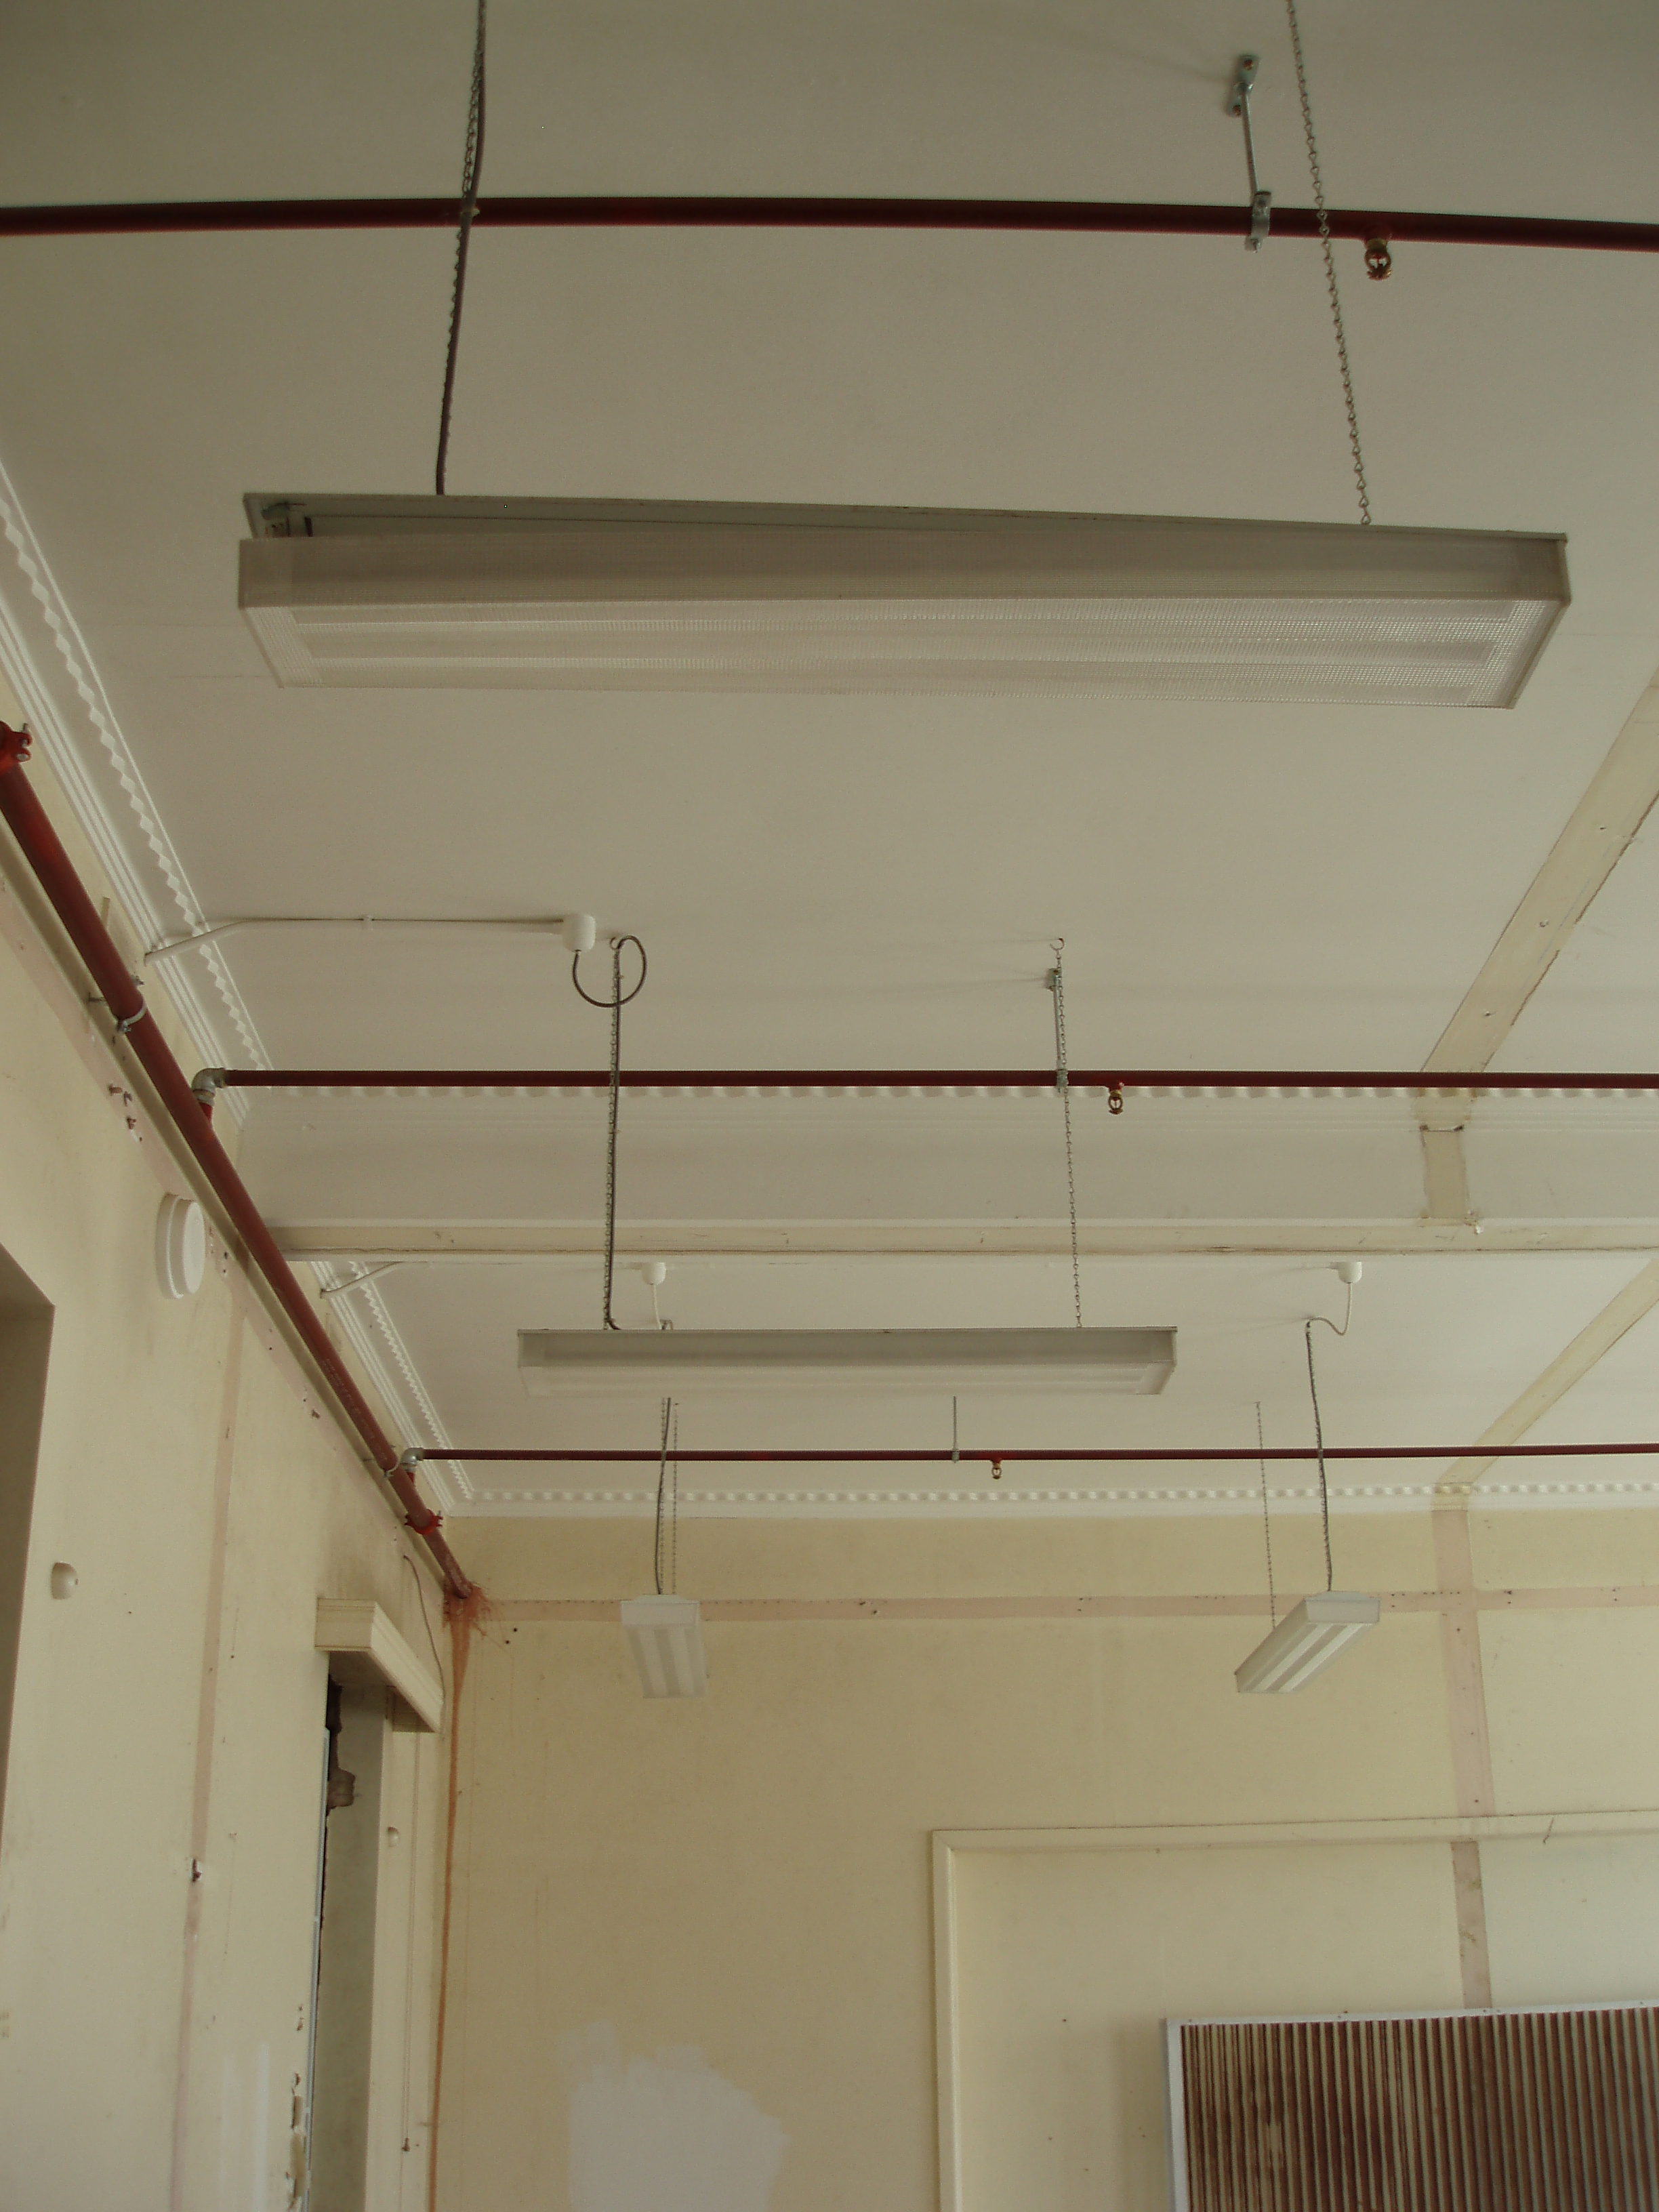 fittings fluorescent light by lighting x ge lumination office luminaires recessed lights ceiling modular ceilings led